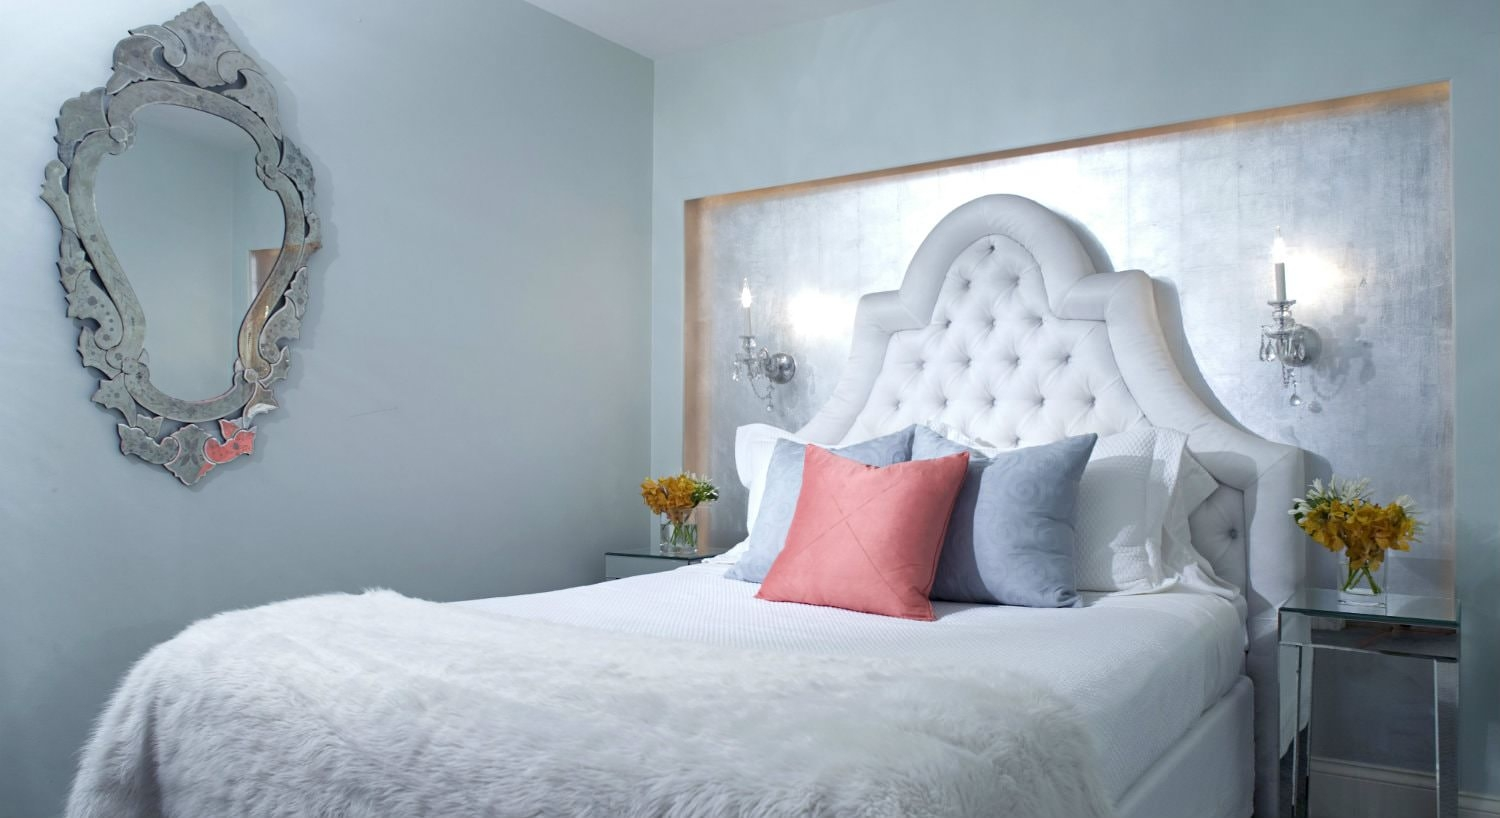 guest room with ornate silver mirror, decorative white upholstered headboard, and white fur blanket